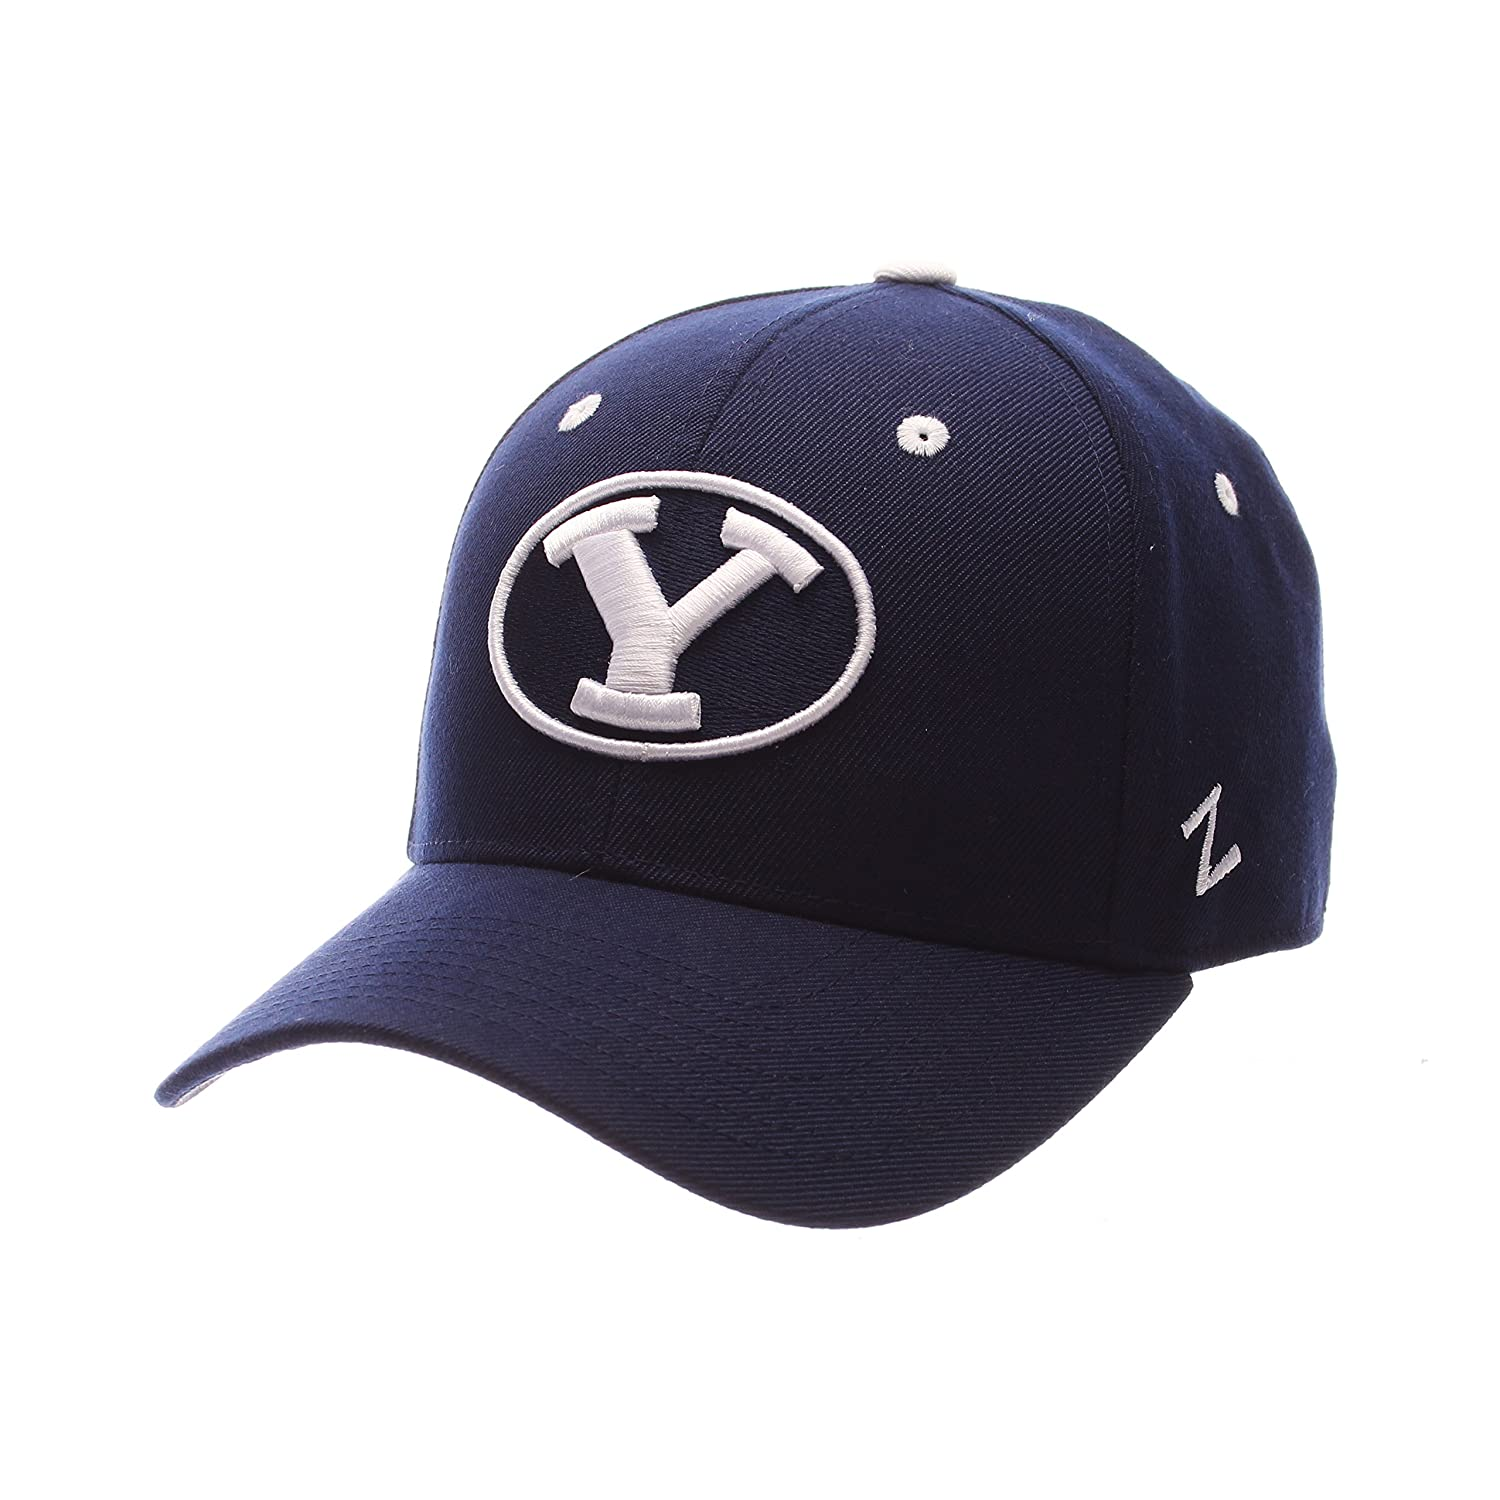 Zephyr NCAA Mens DH Fitted Cap